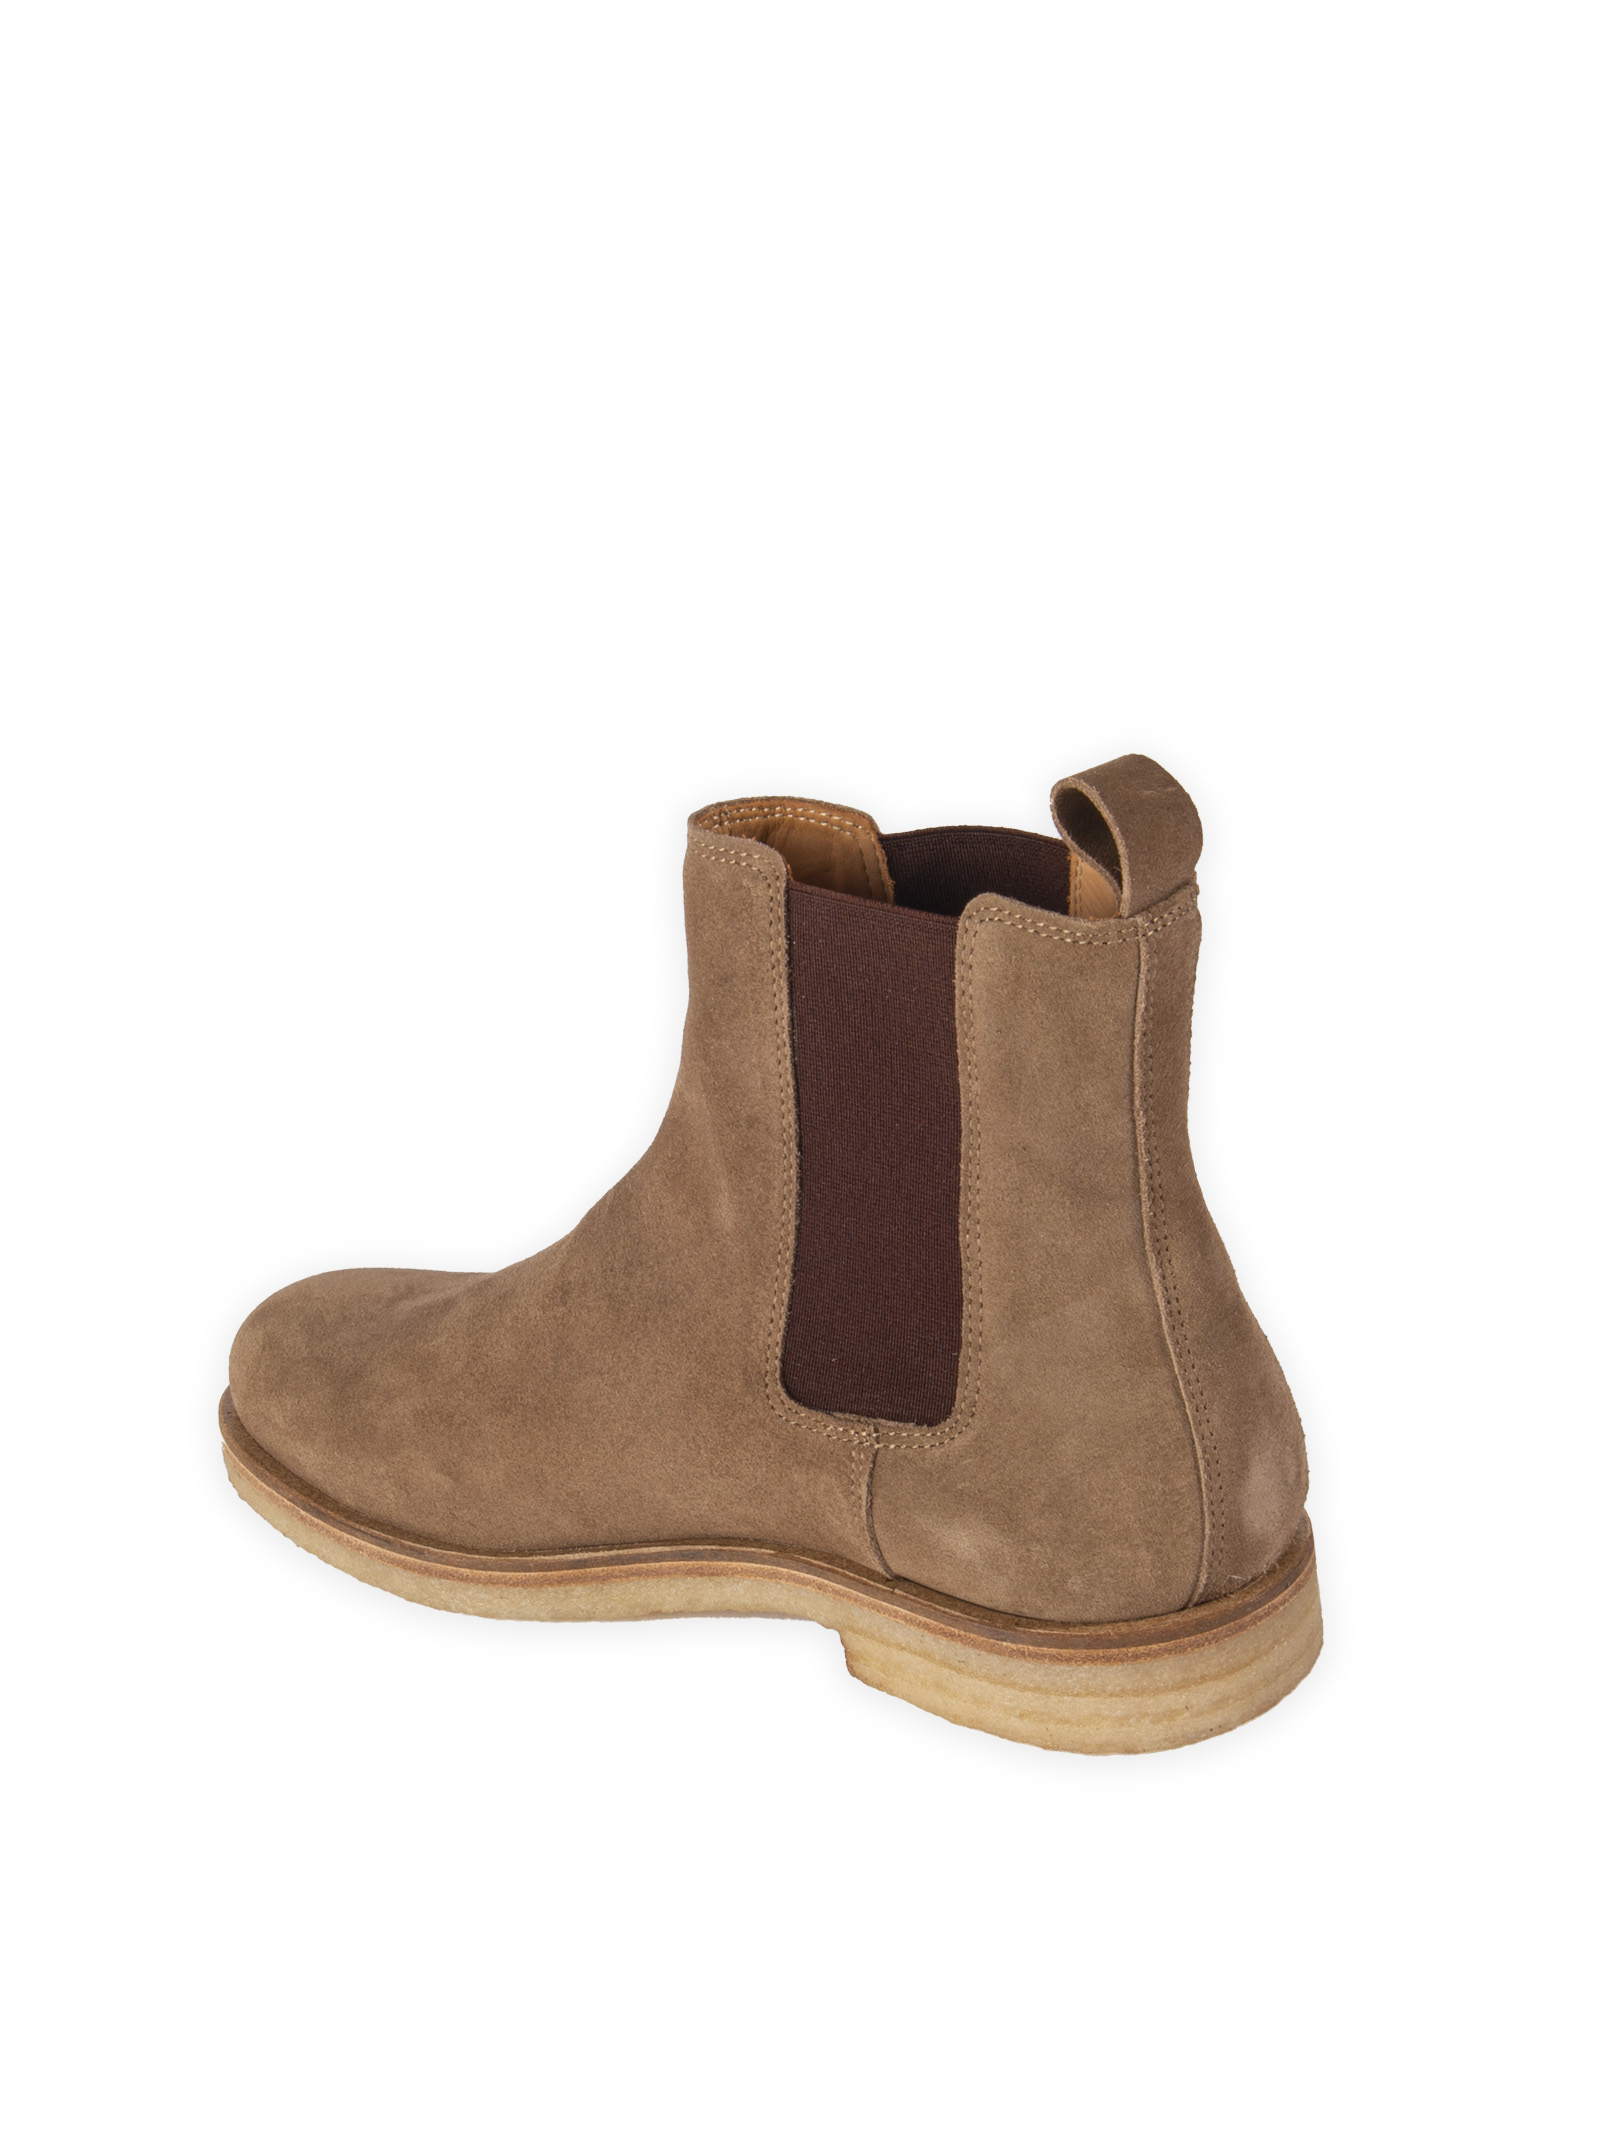 M15BOOTS-010